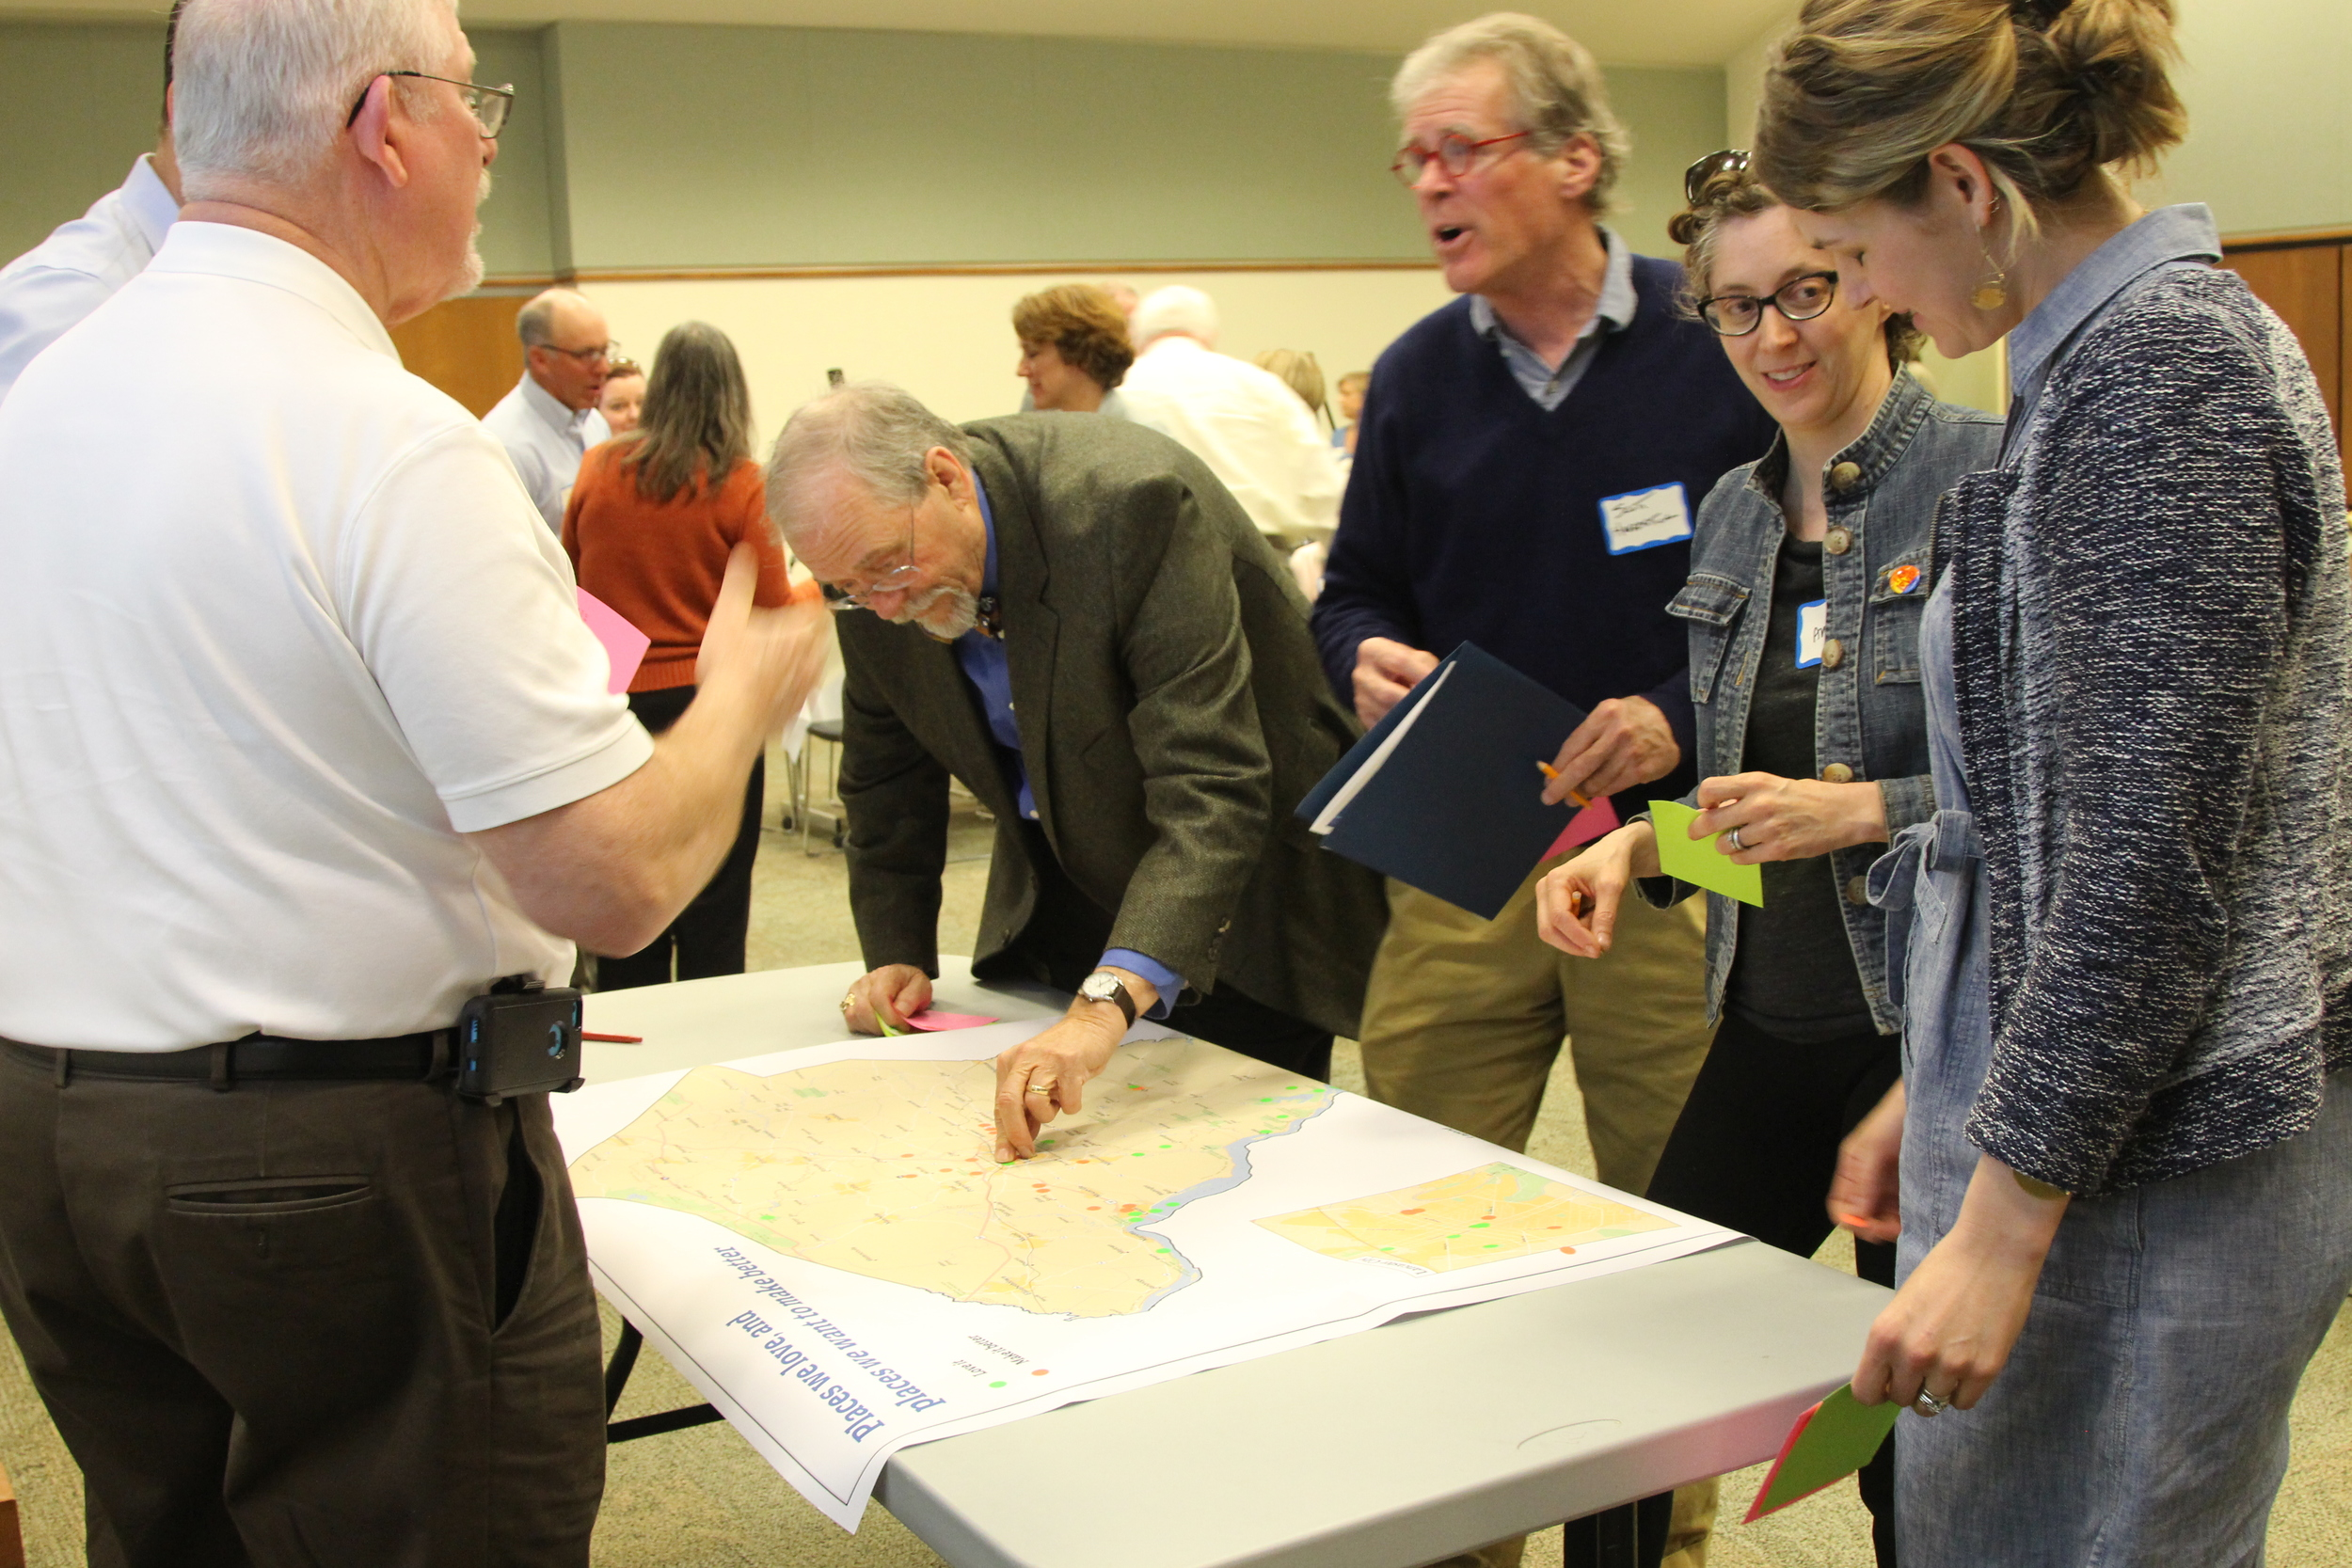 Mayor Lutz of Columbia,Mayor Gray of Lancaster, and other municipal leaders mark places they love and places they want to make better in Lancaster County.